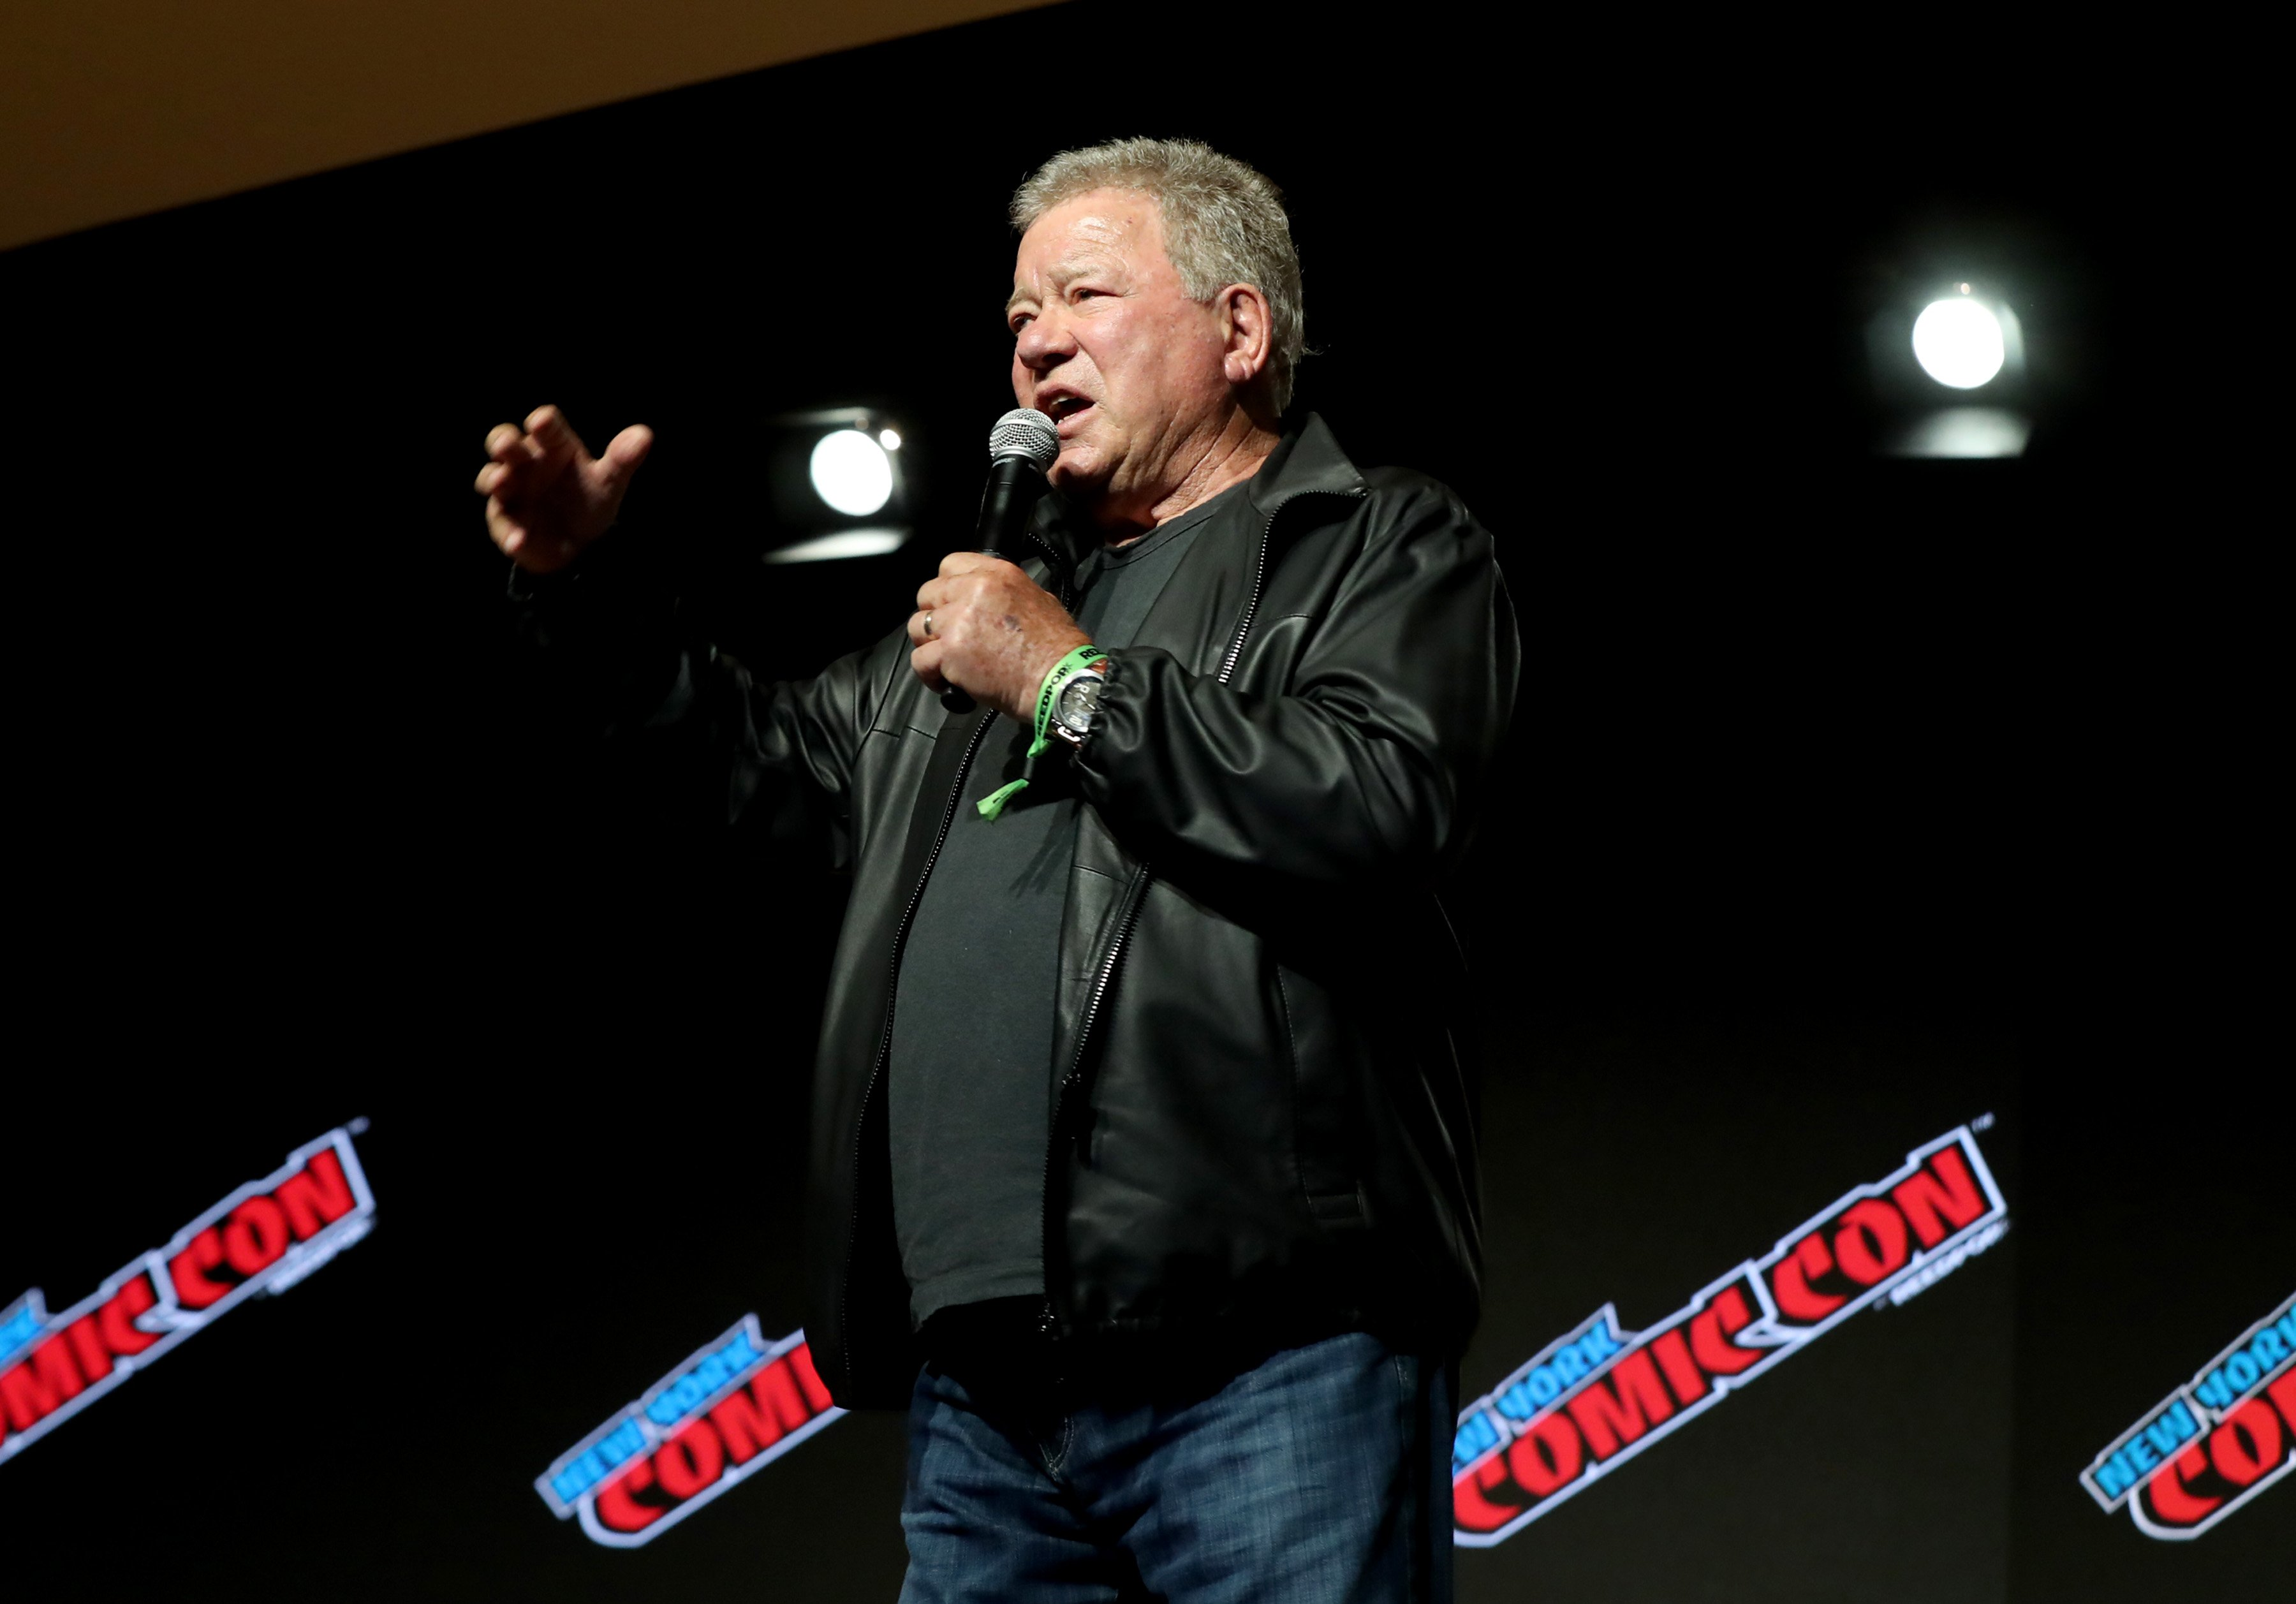 William Shatner at the William Shatner Spotlight panel during Day 1 of New York Comic Con 2021 at Jacob Javits Center in New York City | Photo: Bennett Raglin/Getty Images for ReedPop